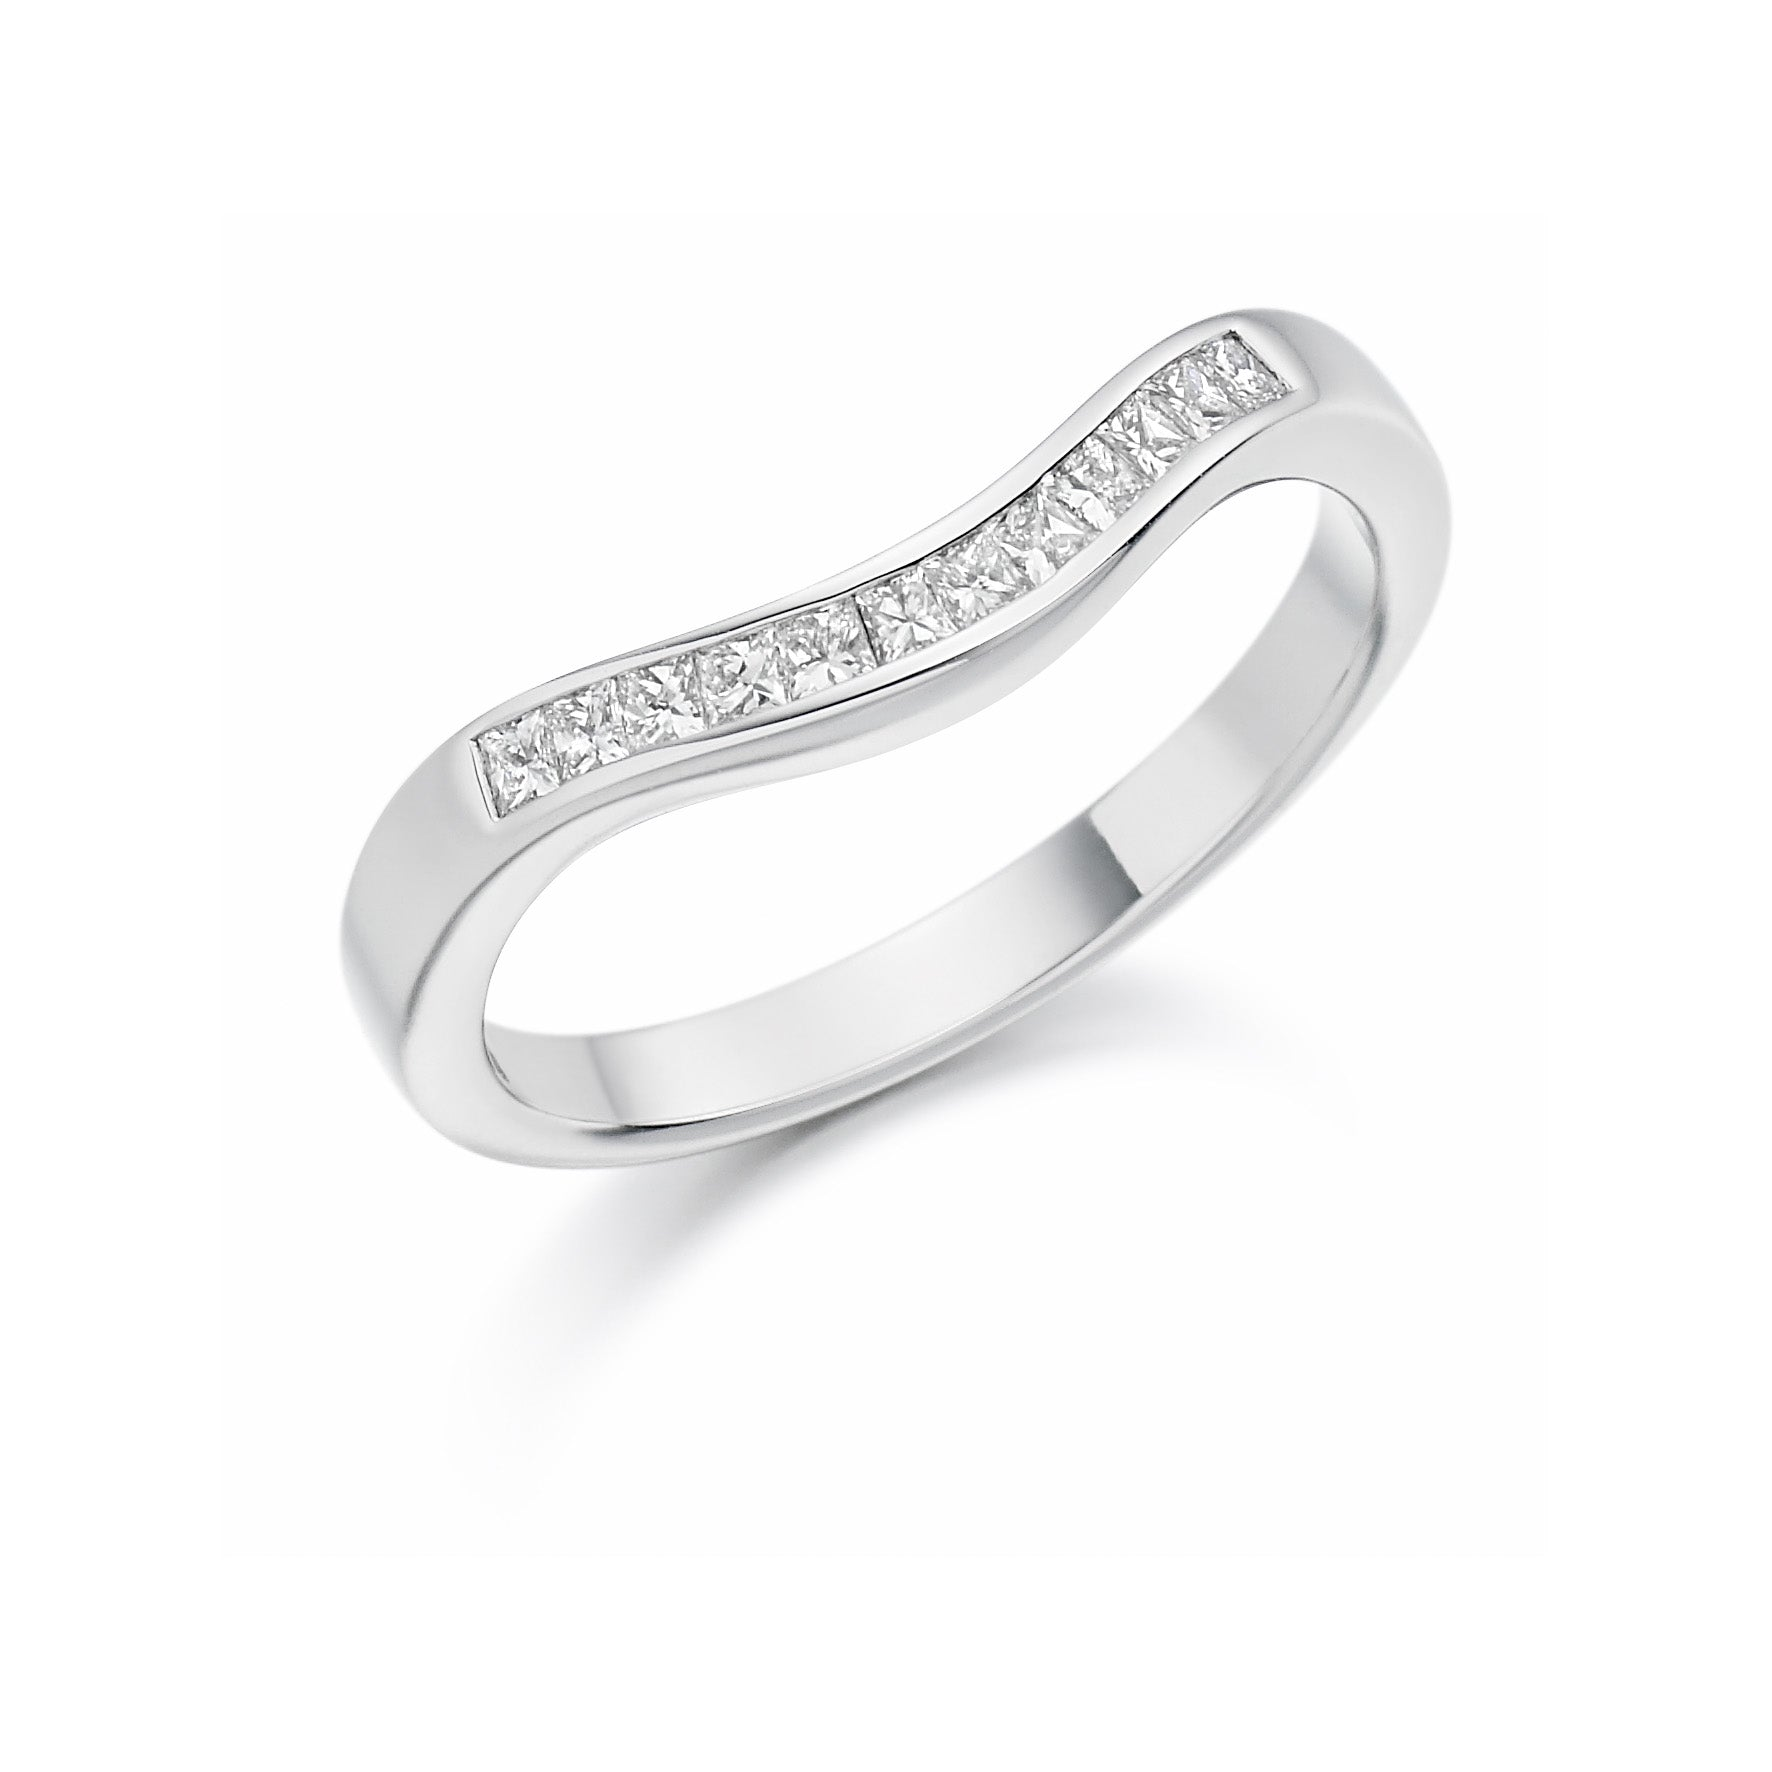 18ct White Gold 0.25ct Princess Cut Diamonds Curved Band Vintage Wedding Ring